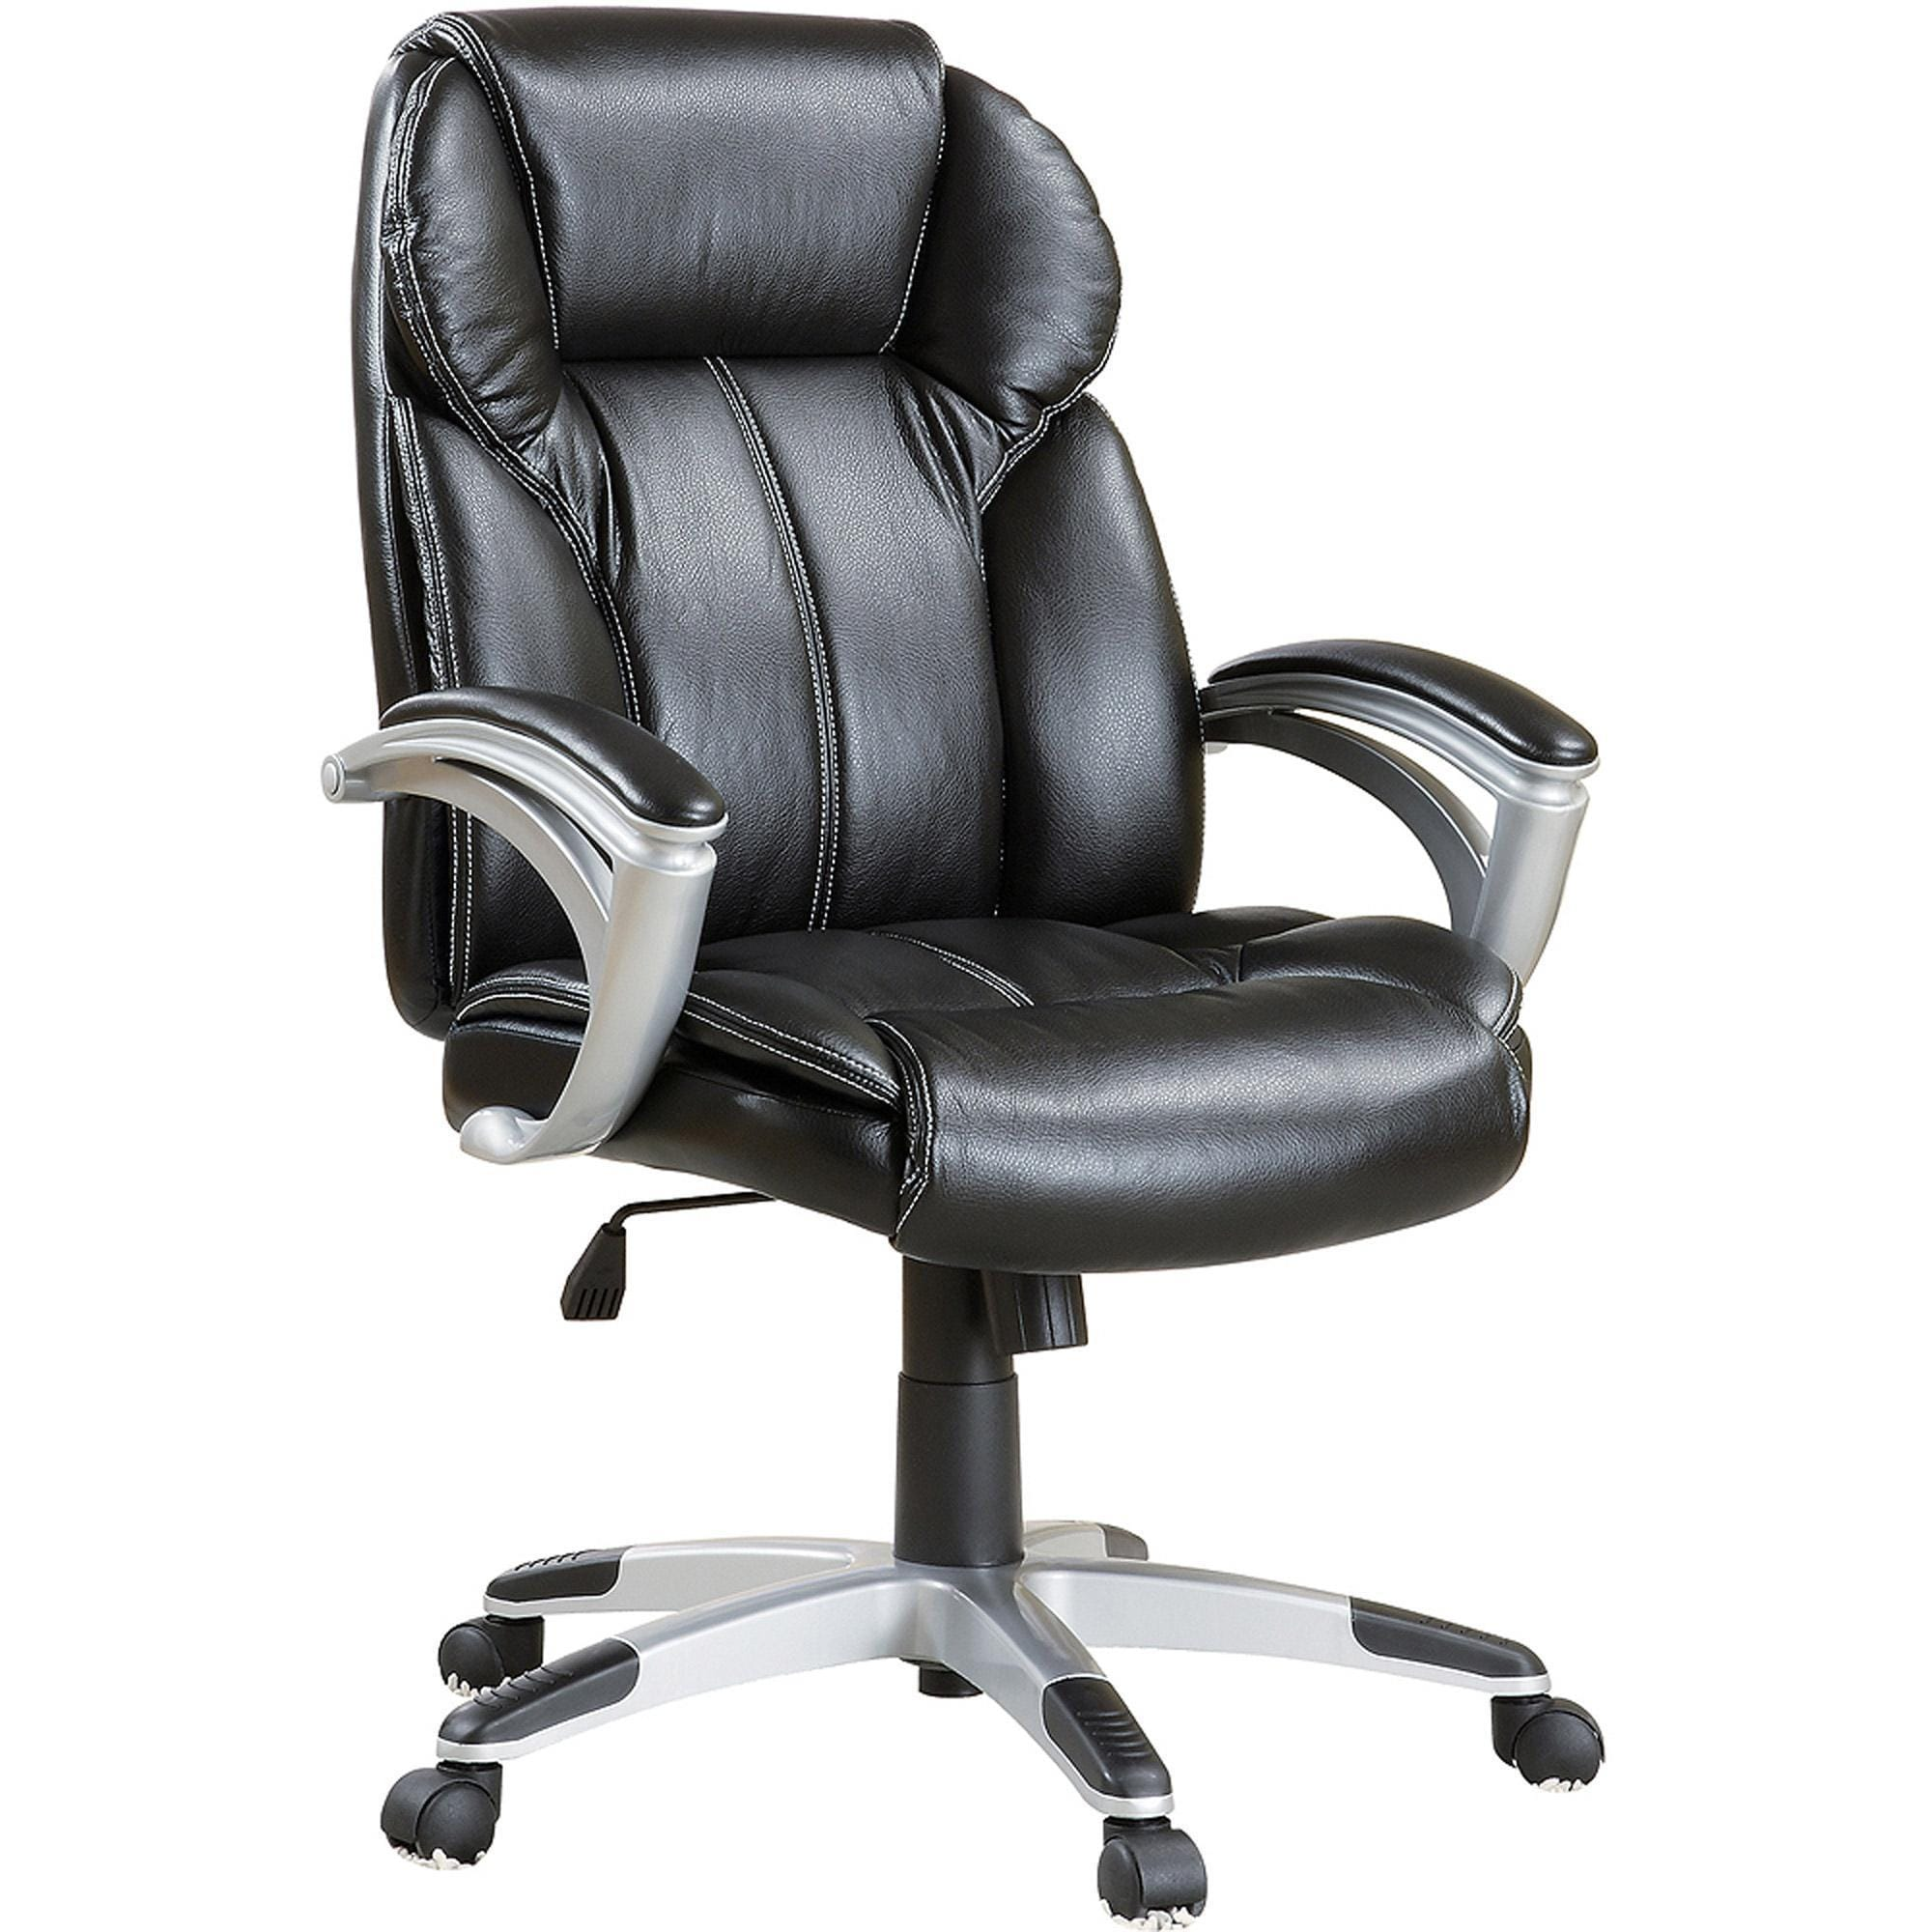 Executive Ergonomic Plush Office Chair With Padded Arms